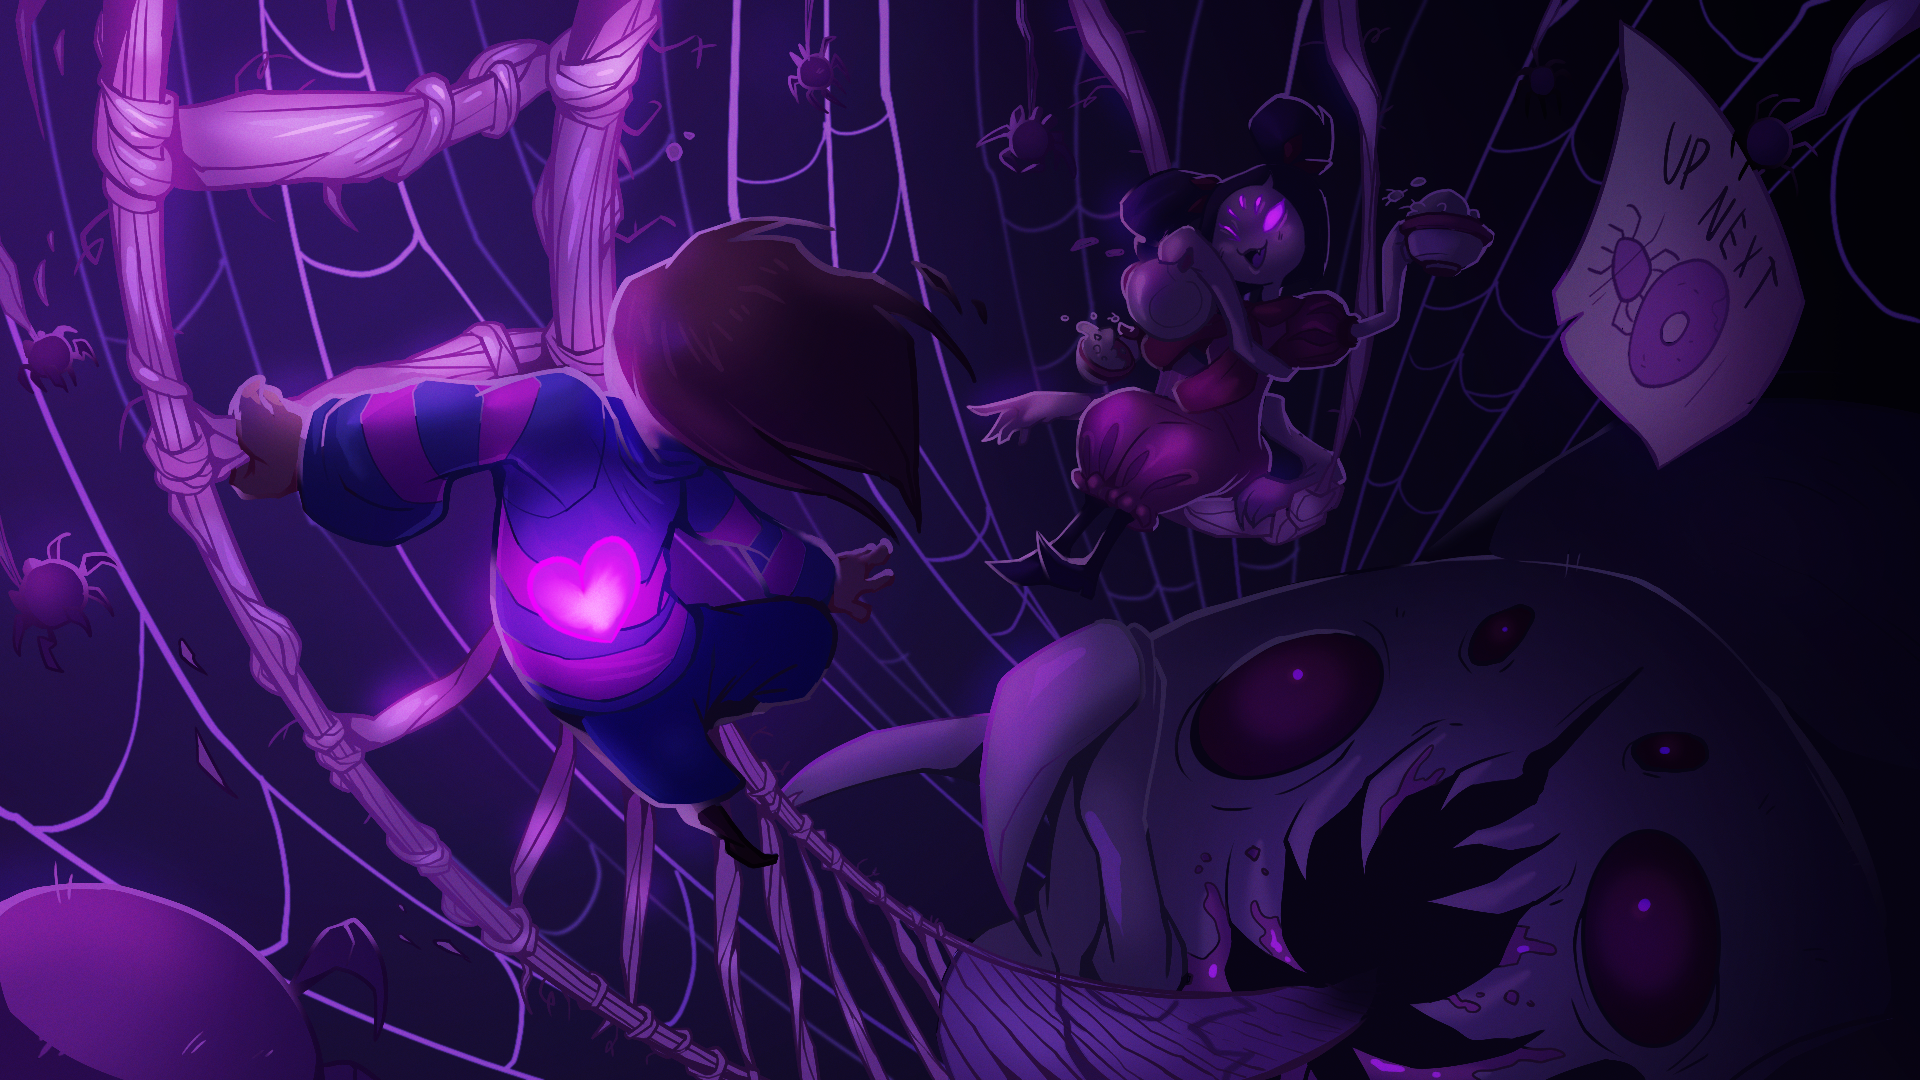 1920x1080 - Undertale Wallpaper 1920x1080 21